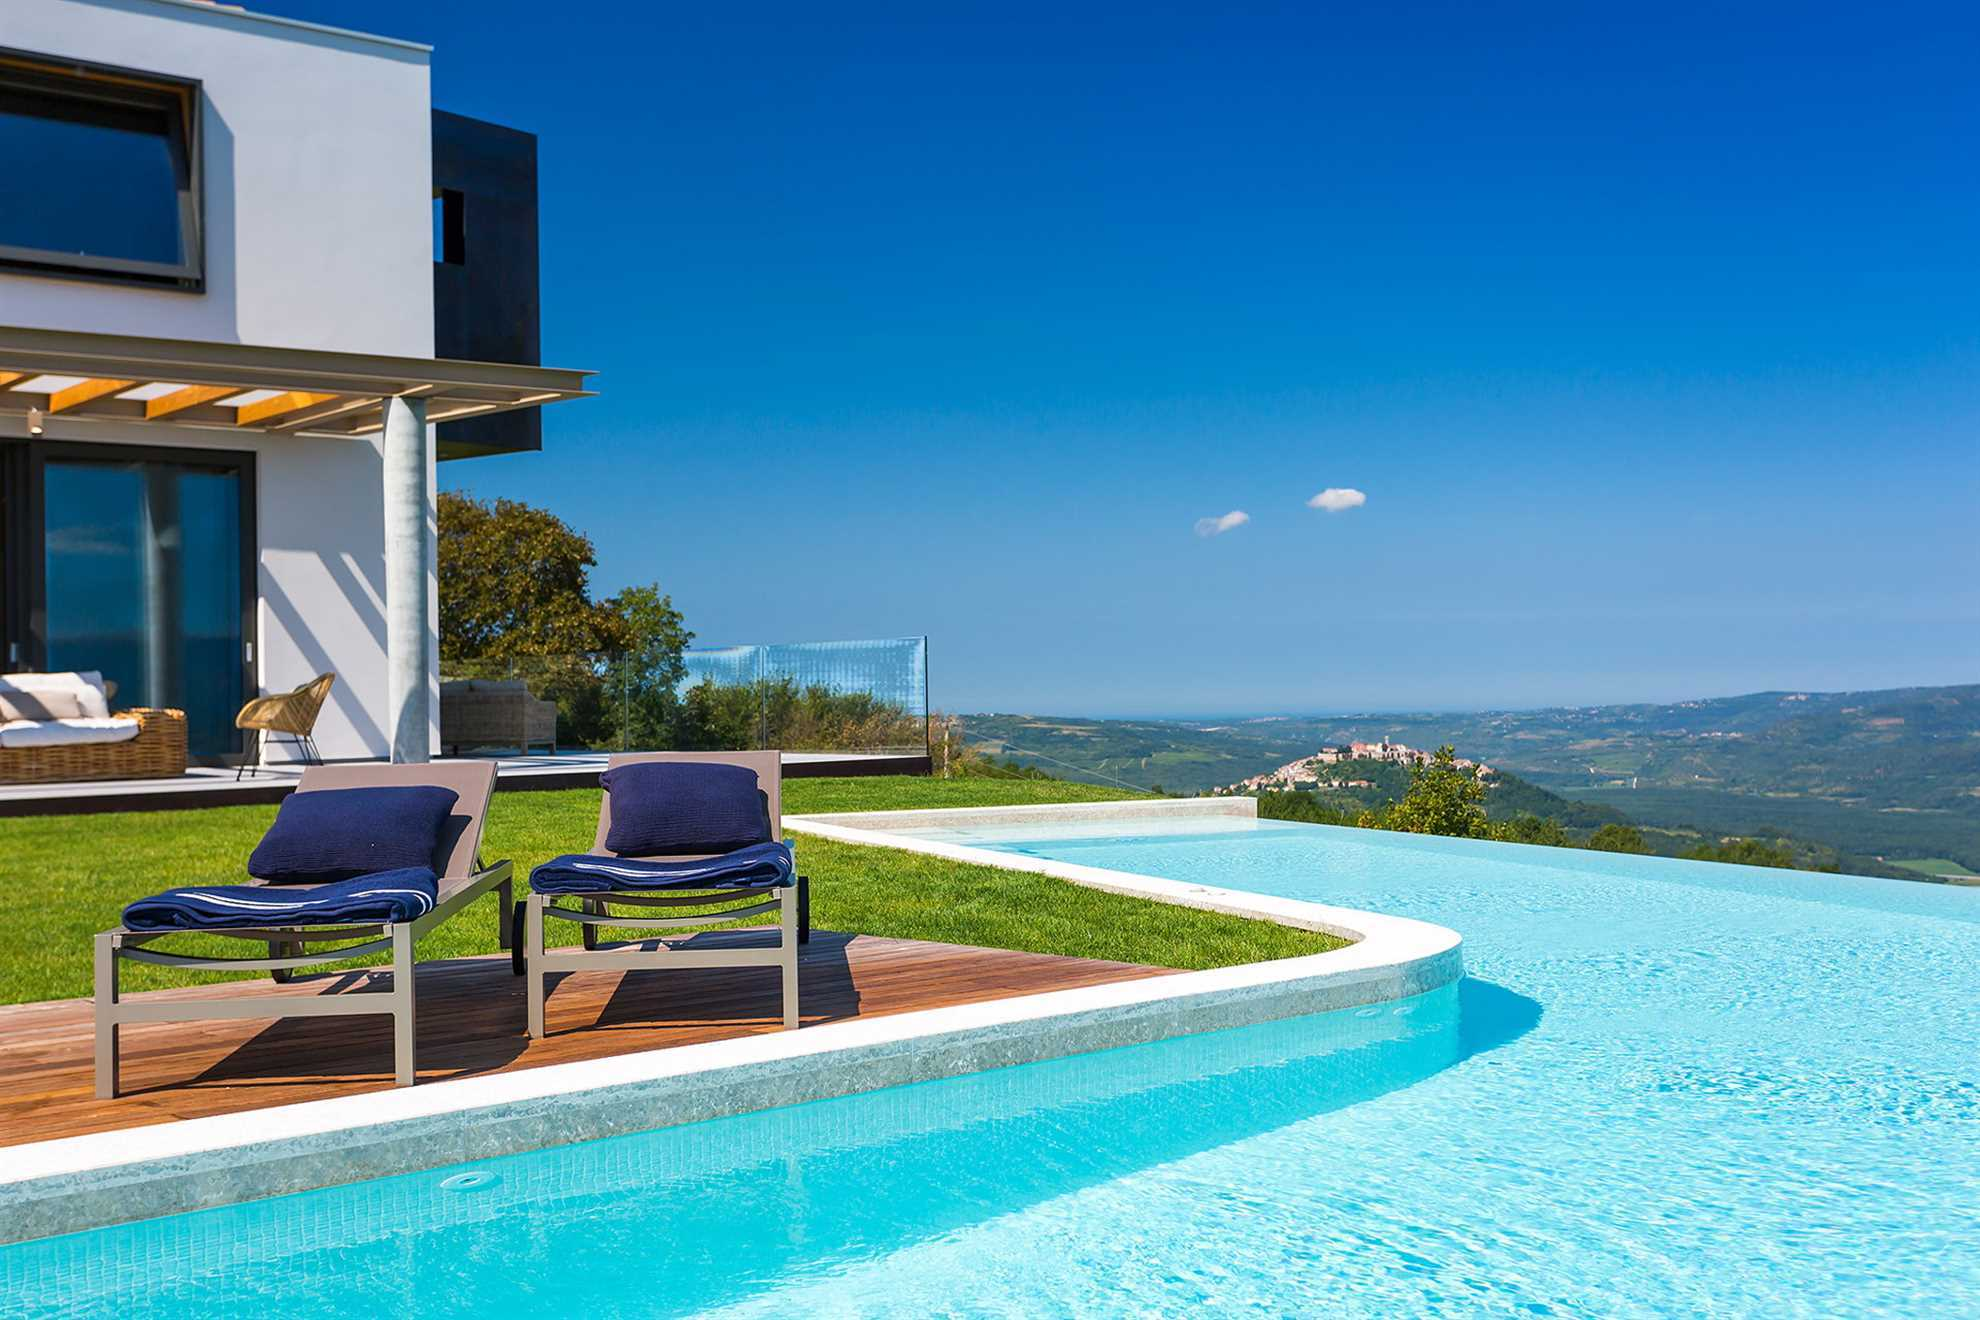 Villa Grand Horizion with L-shaped swimming pool on hilltop in Istrian inland, Croatia